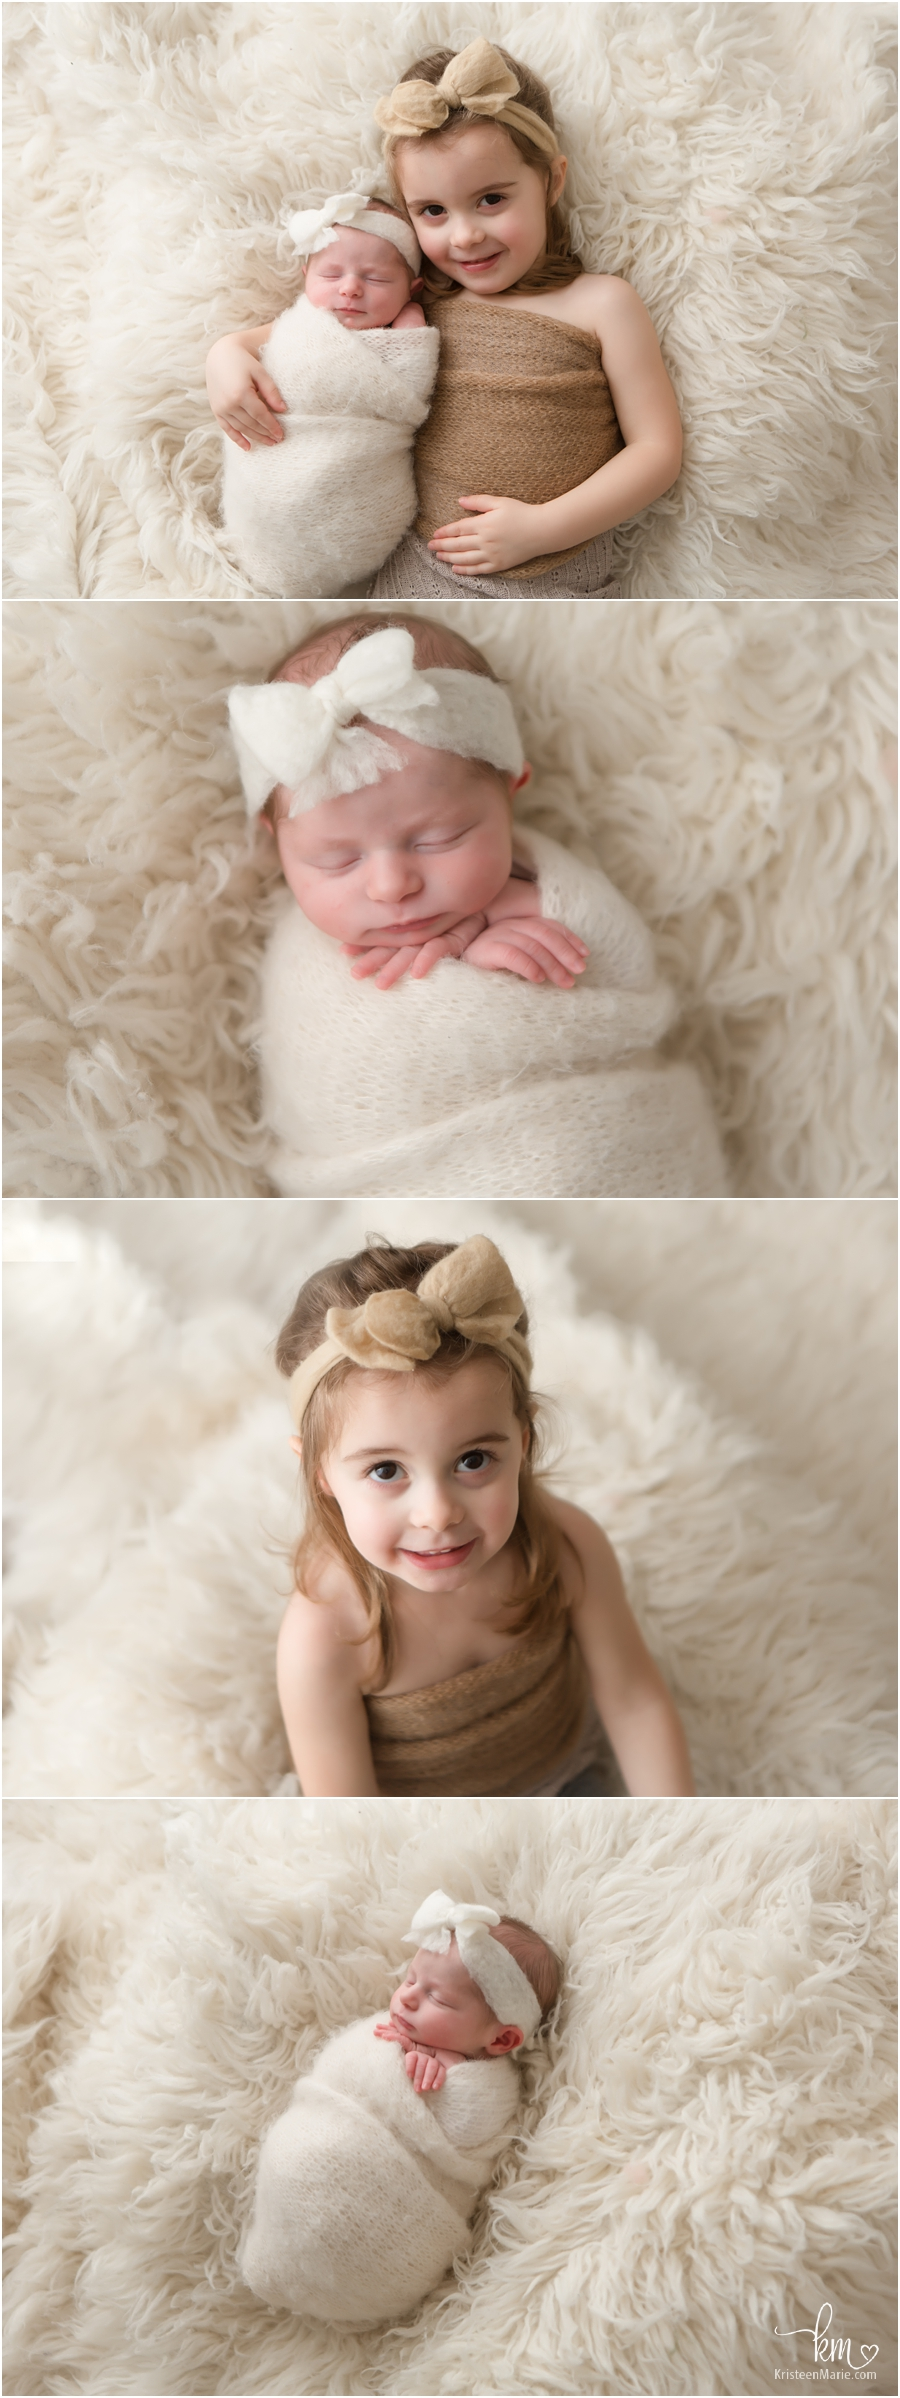 big sister and little sister in neutral colors - Carmel newborn photography